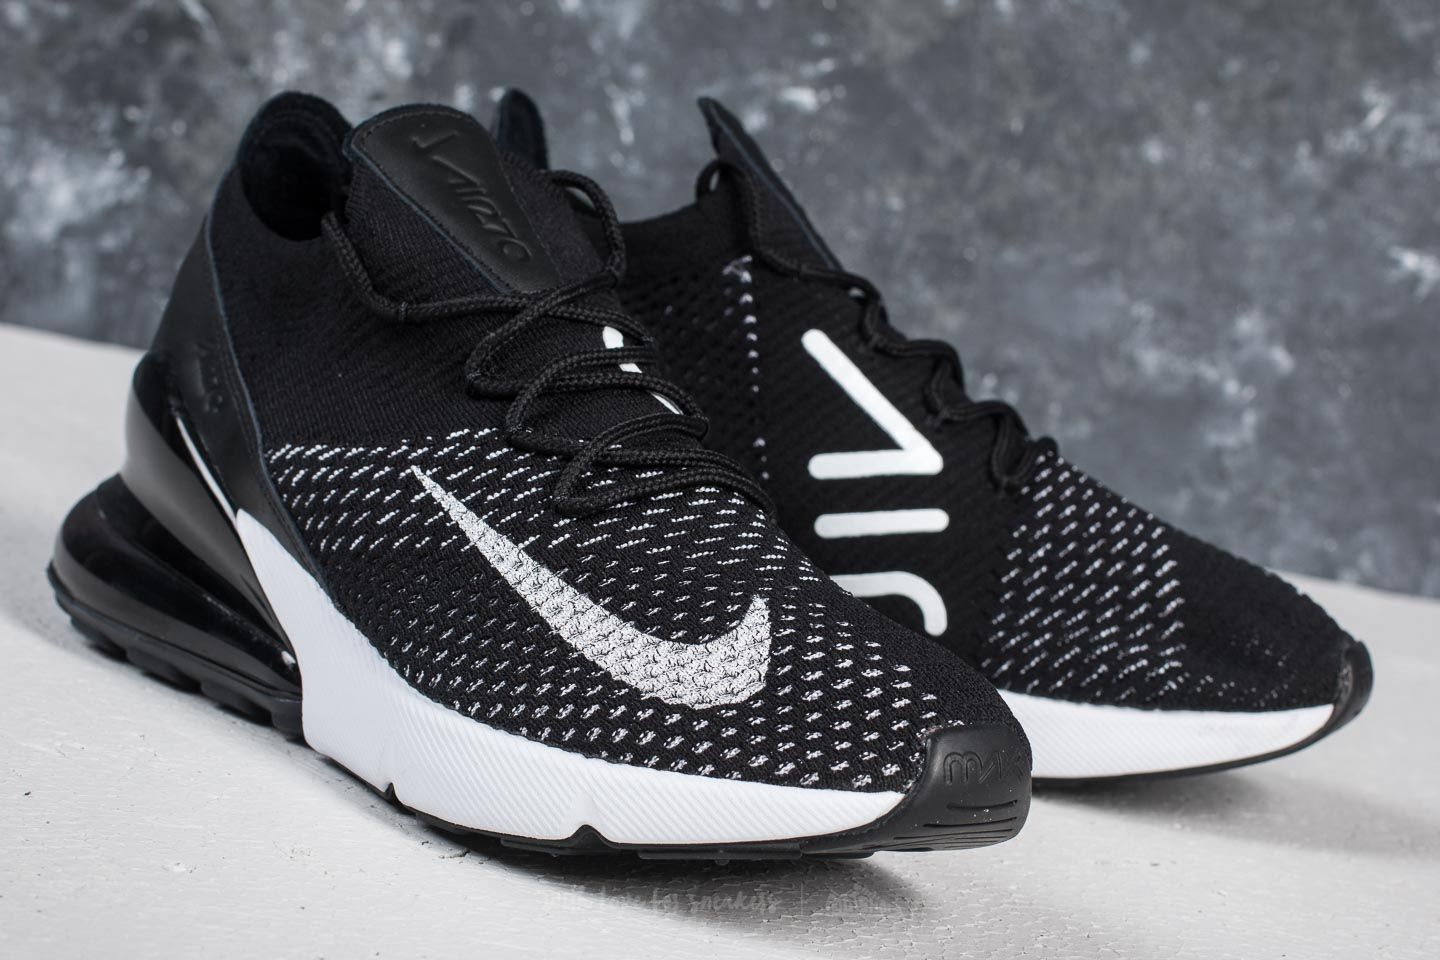 Nike Air Max 270 Flyknit W Black White White | Footshop